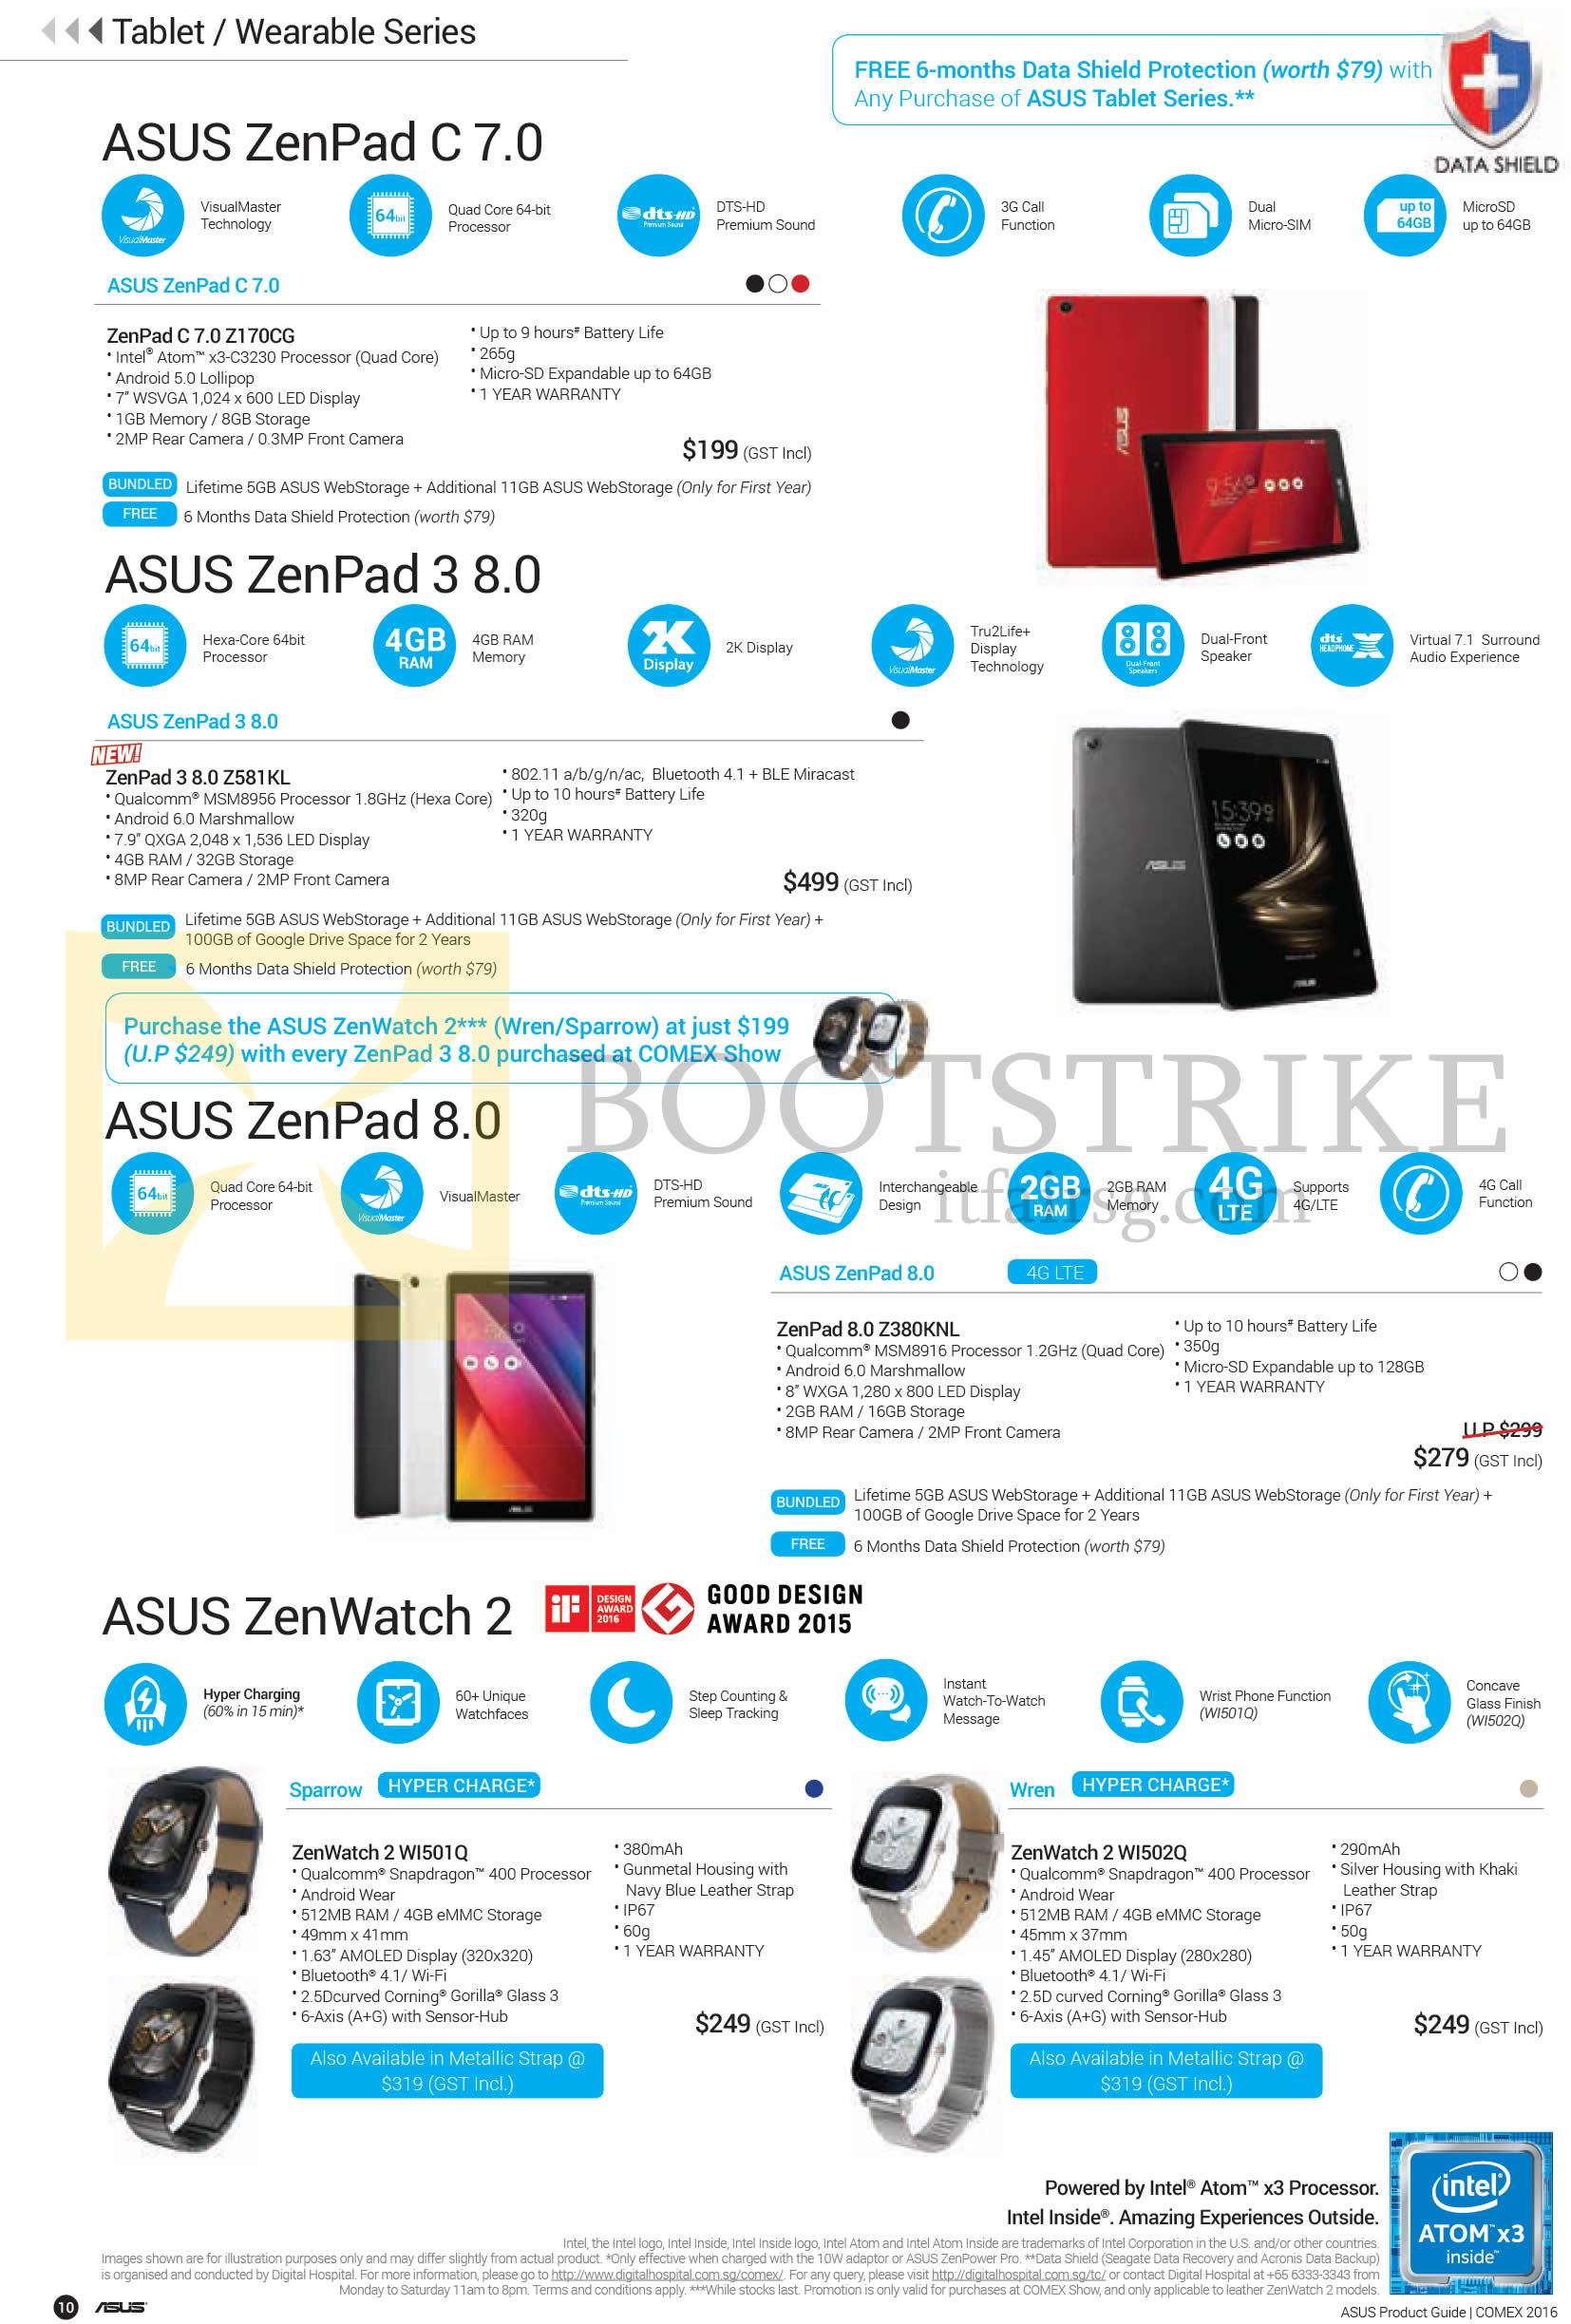 COMEX 2016 price list image brochure of ASUS Tablets, Wearable Series, Zenpad C 7.0, 3 8.0, 8.0, Zenwatch 2